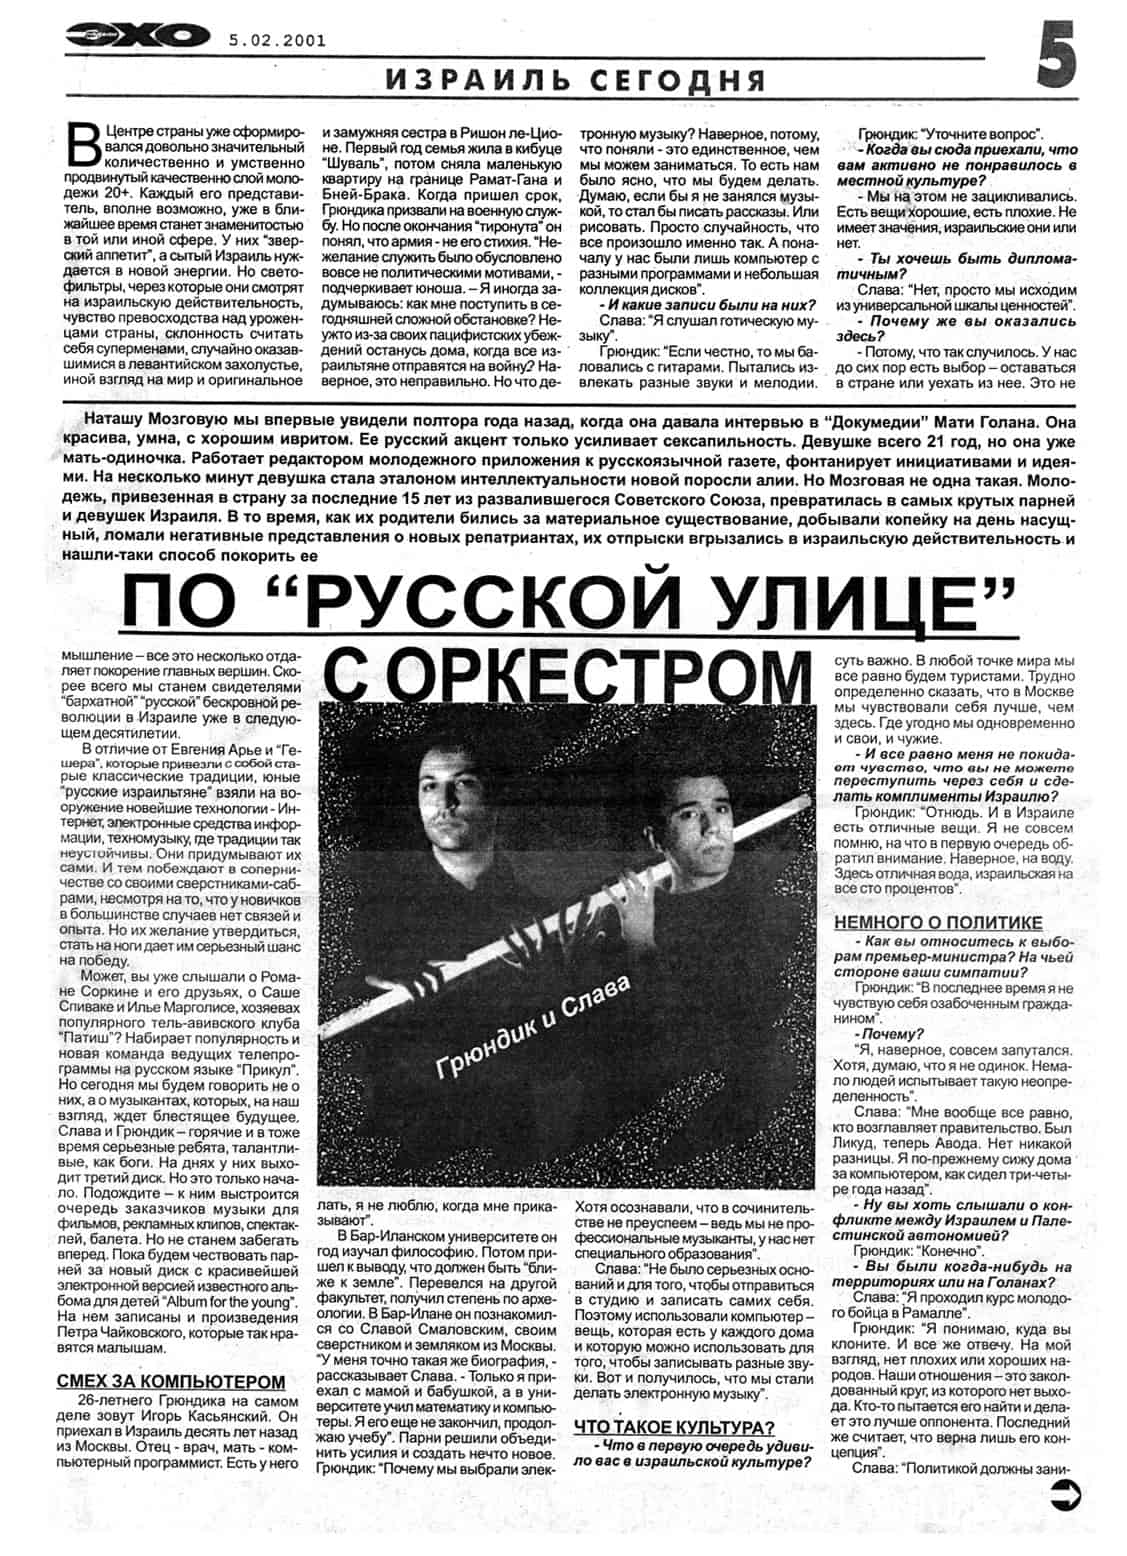 05 02 01 part1 - Echo, Interview with Grundik+Slava, 05.02.2001